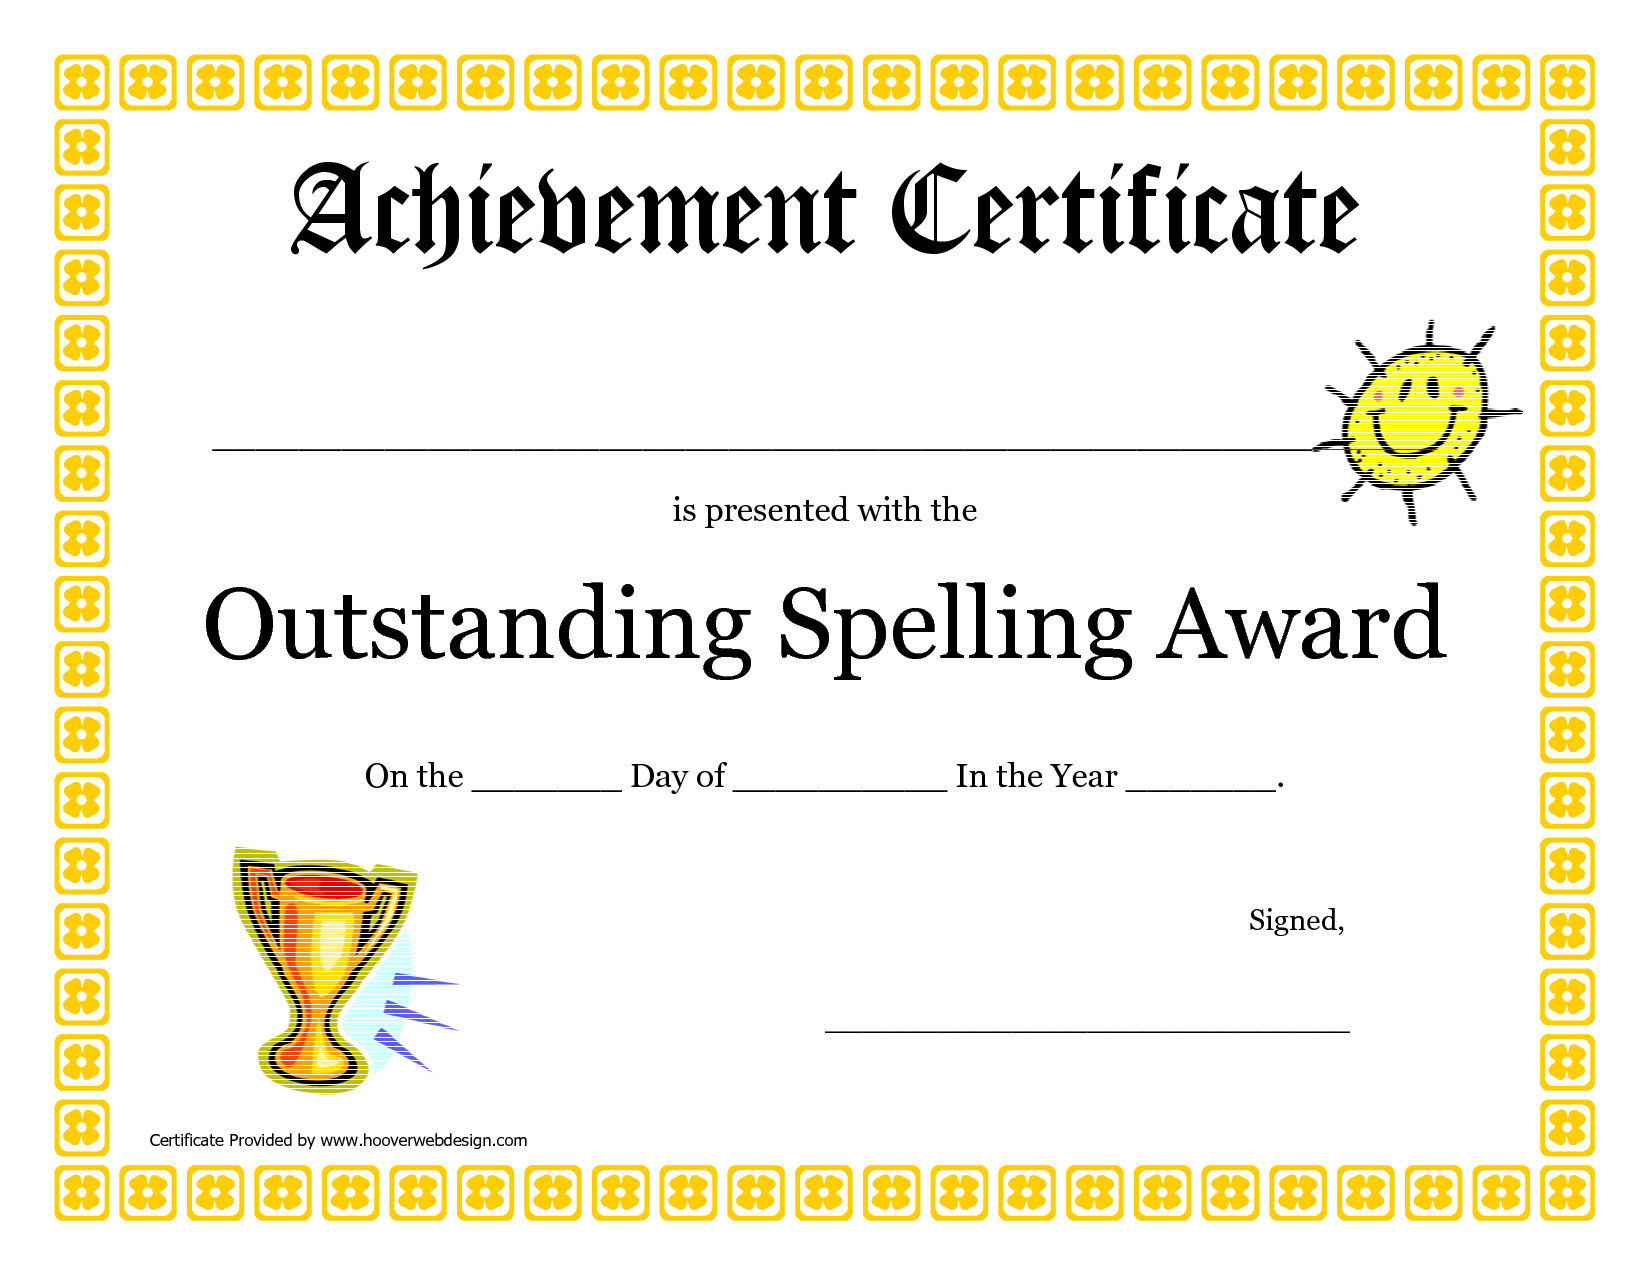 Outstanding Spelling Award Printable Certificate Pdf Picture  Pta For Spelling Bee Award Certificate Template